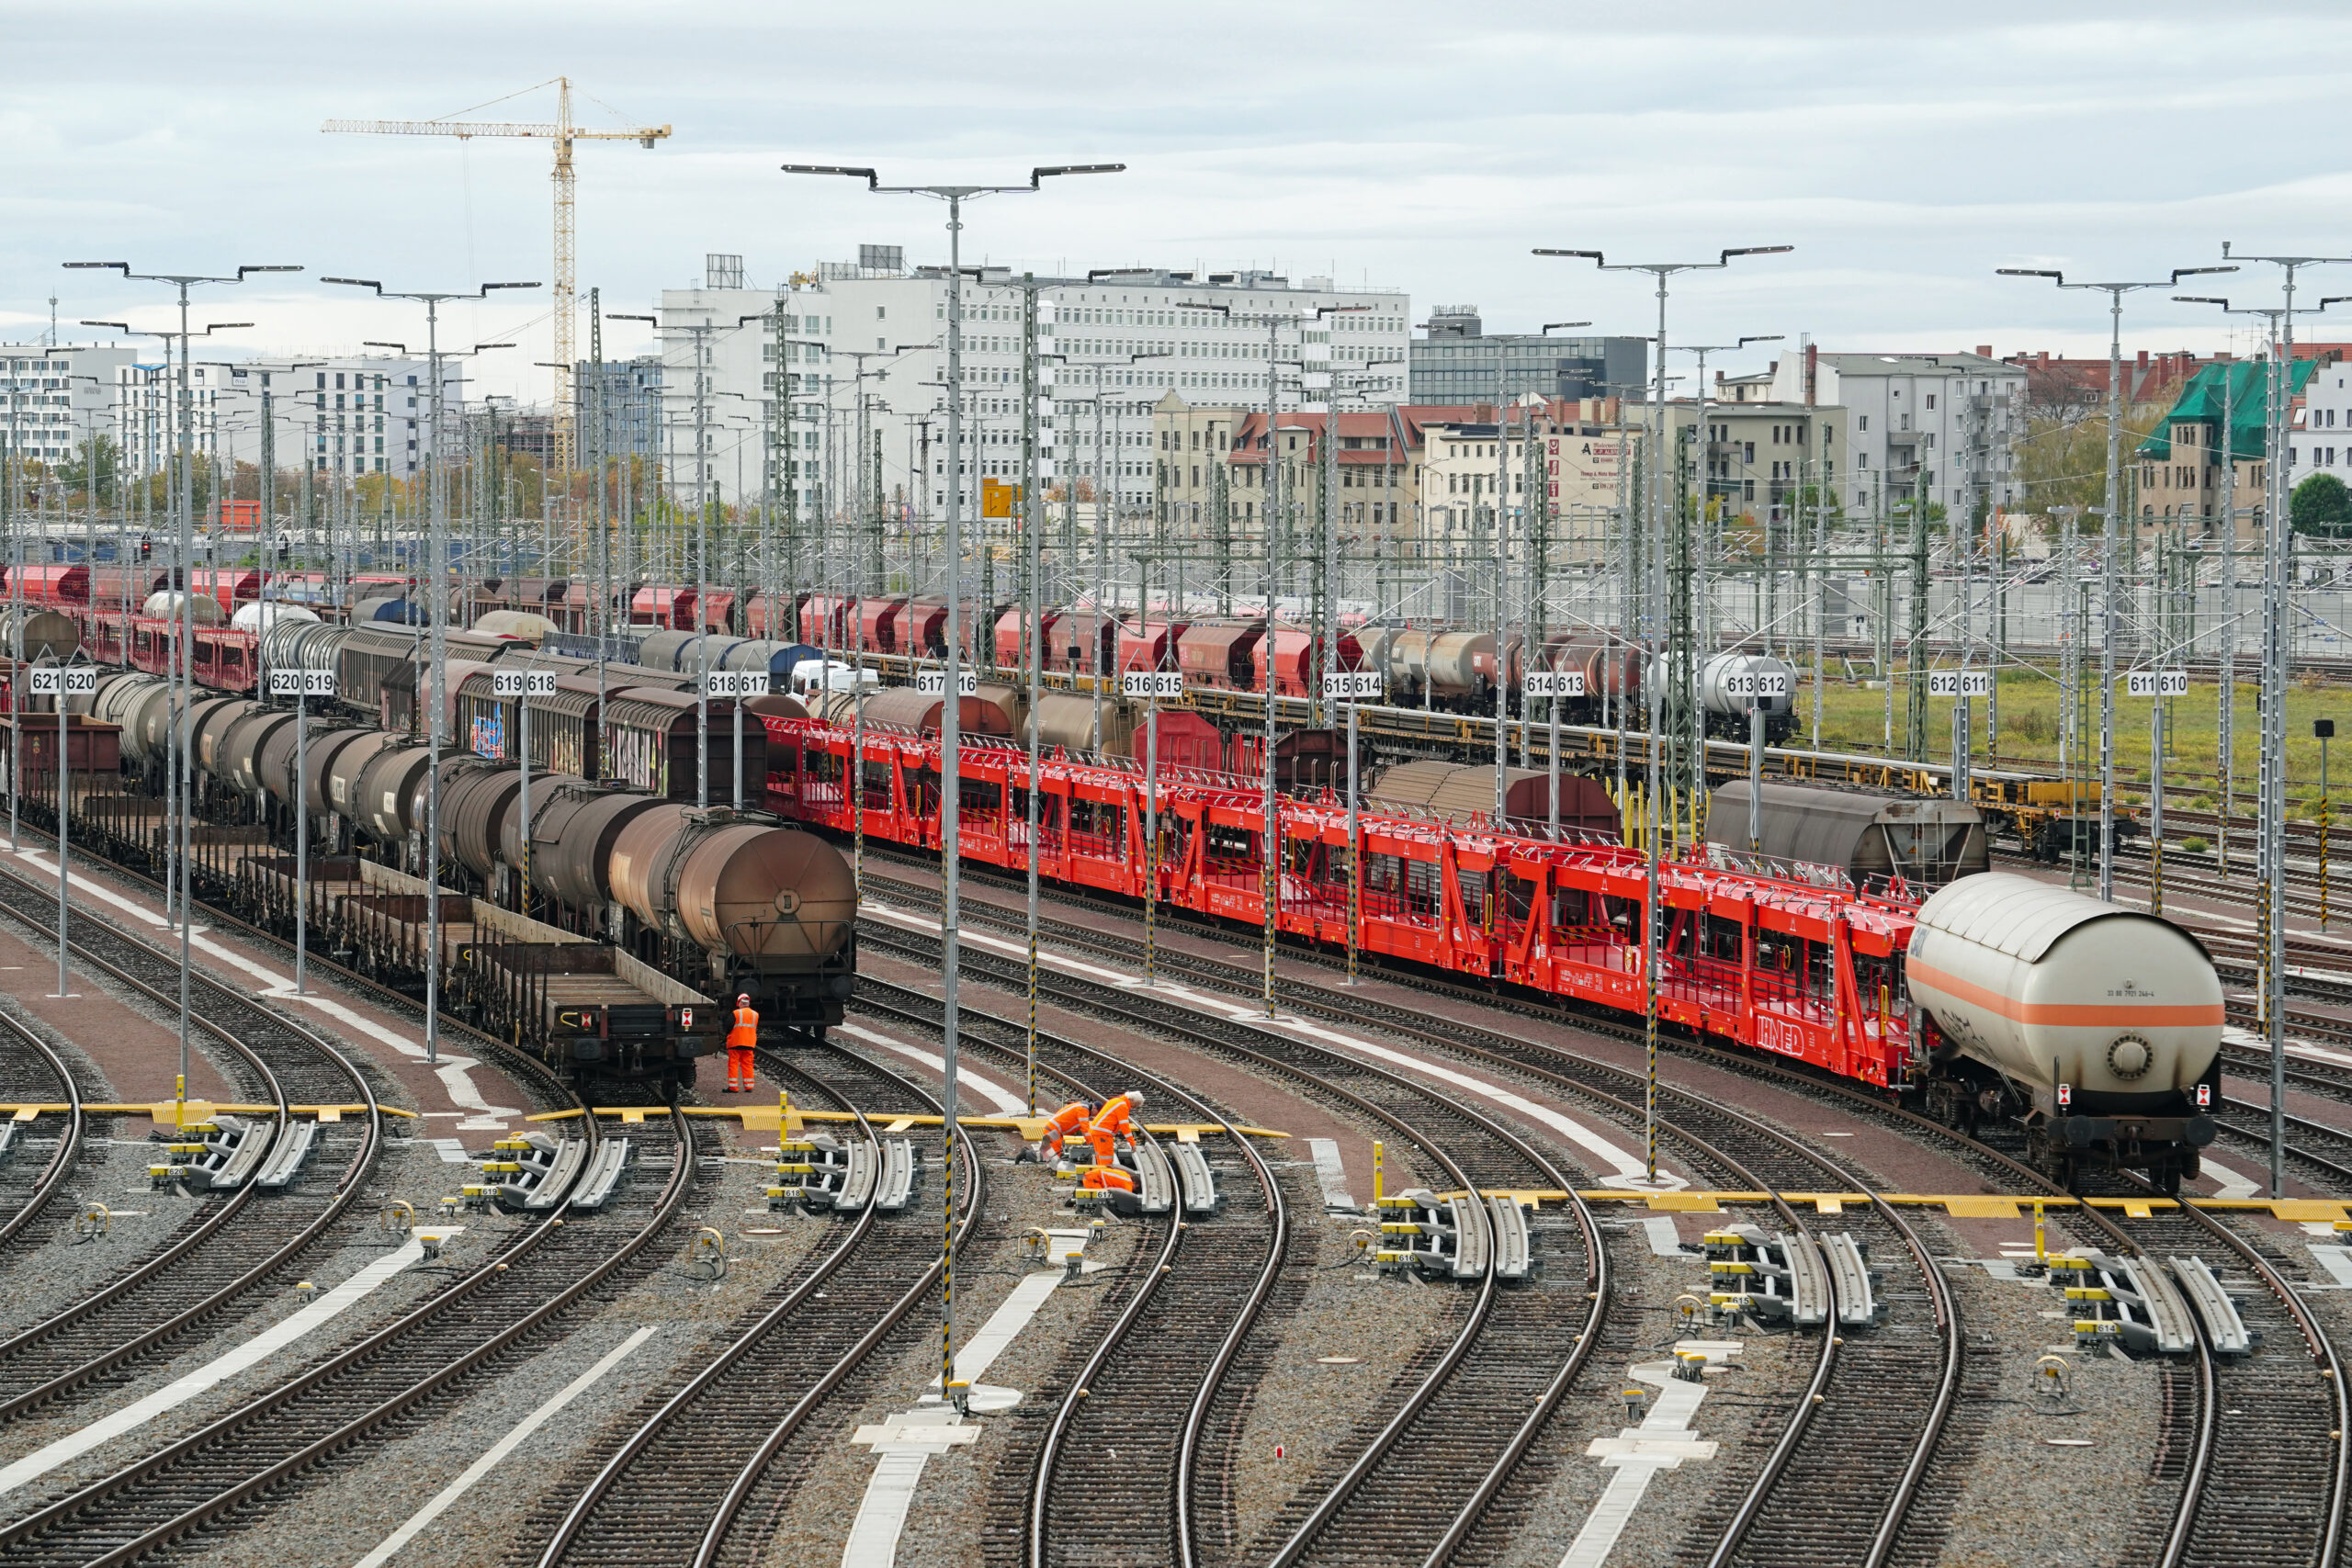 DB train formation yard in Halle/Saale